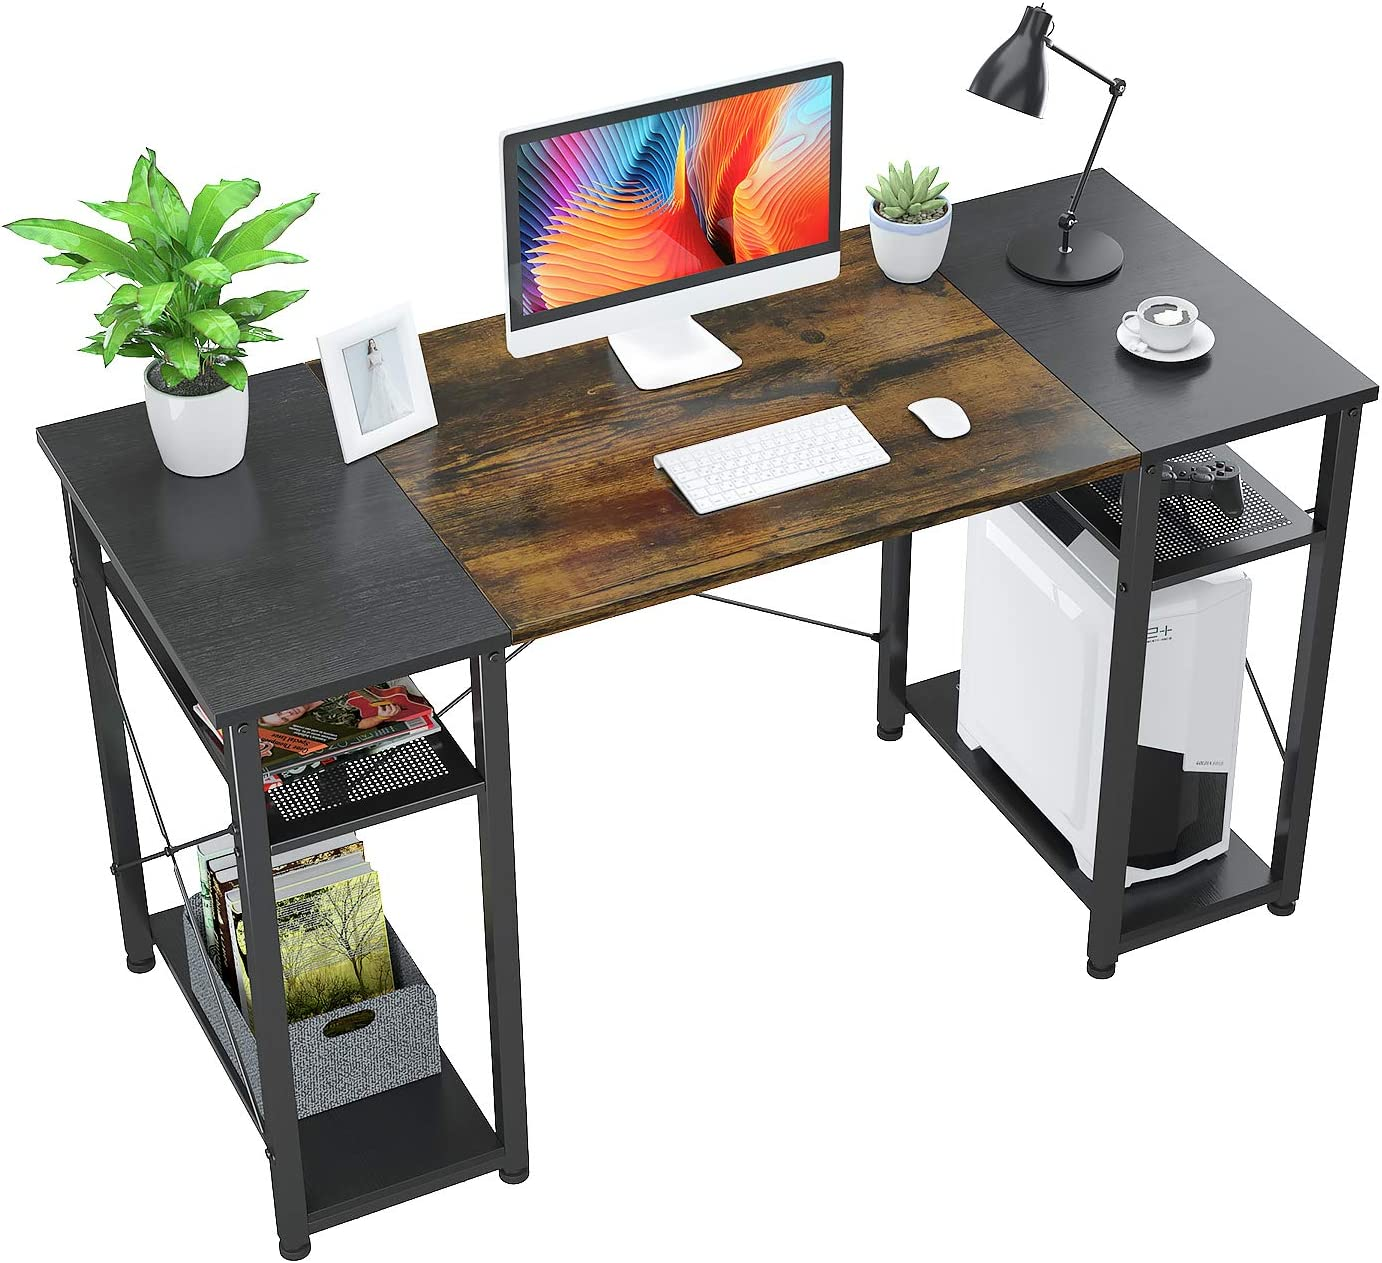 "Foxemart Computer Desk with Storage Shelves, 55"" Sturdy Office Desk with CPU Stand, Industrial Desk Study Writing Table for Home Office, Vintage Rustic Brown and Black"